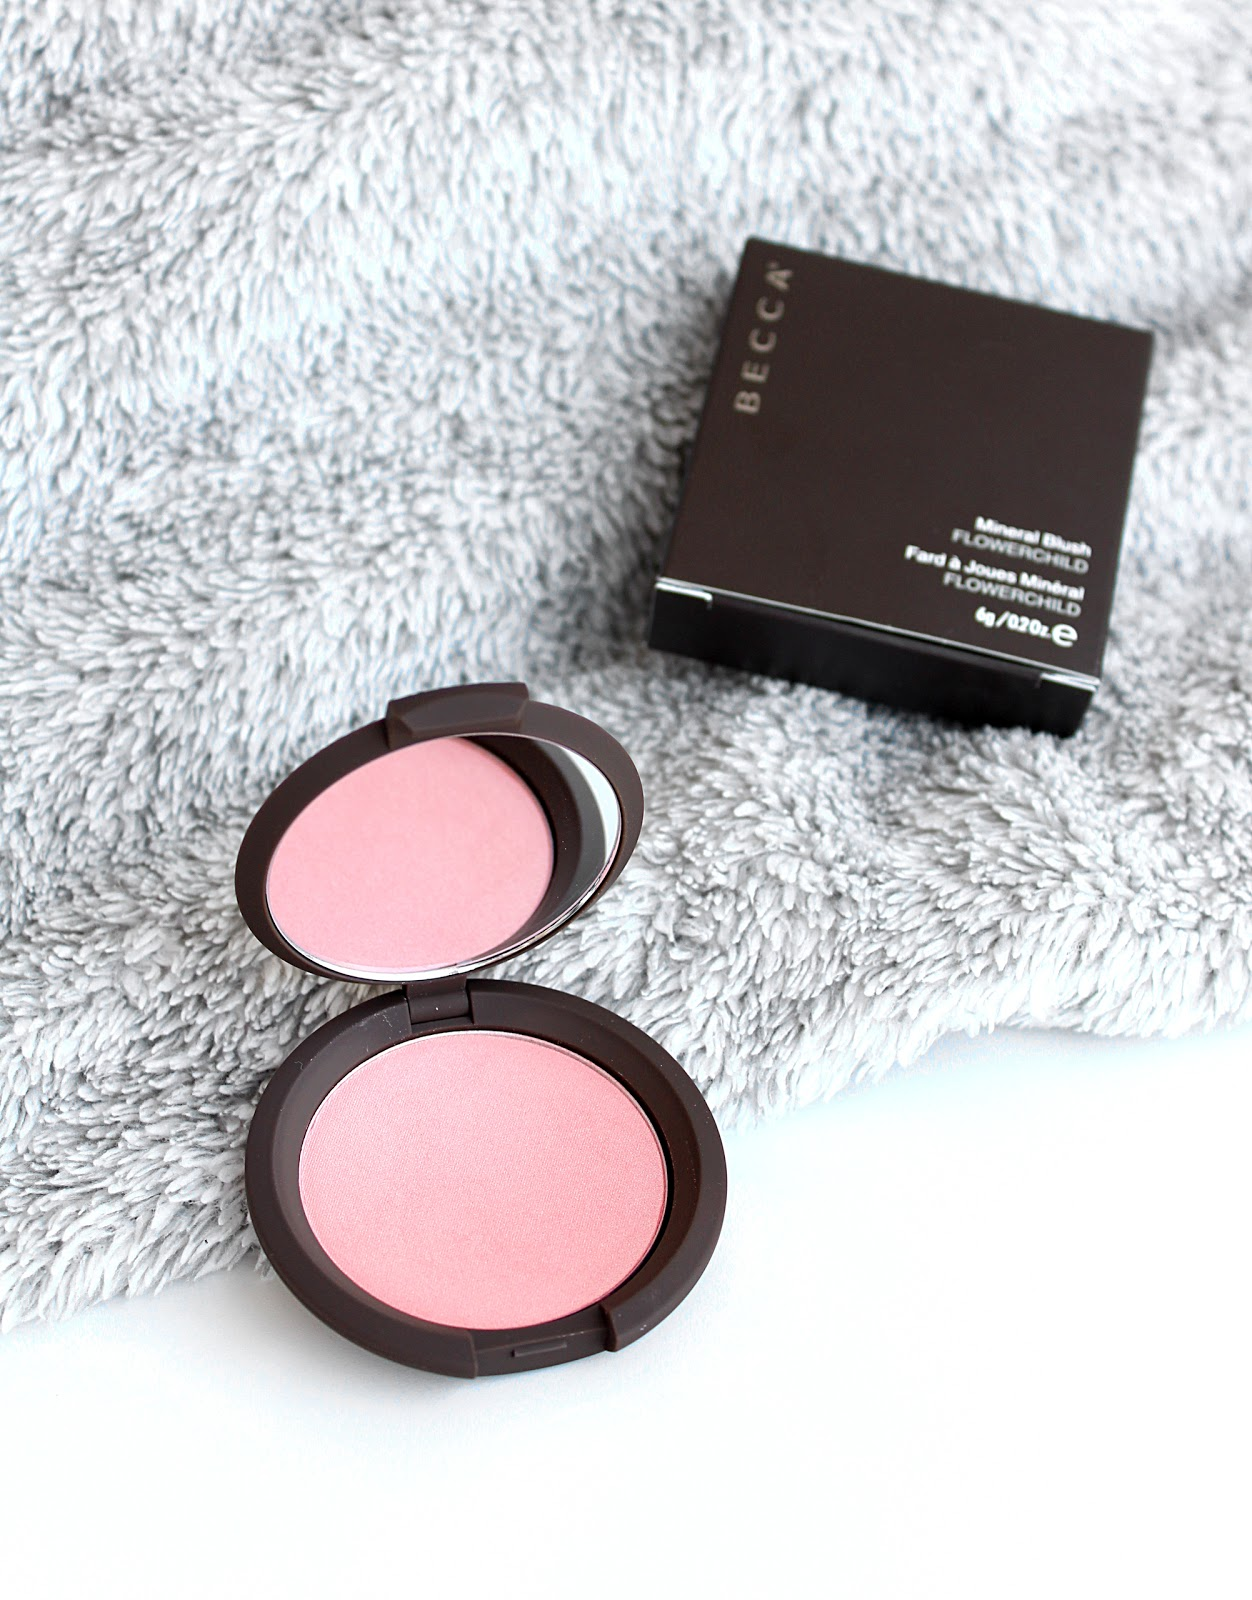 BECCA Flowerchild Mineral Blush Review & Swatches